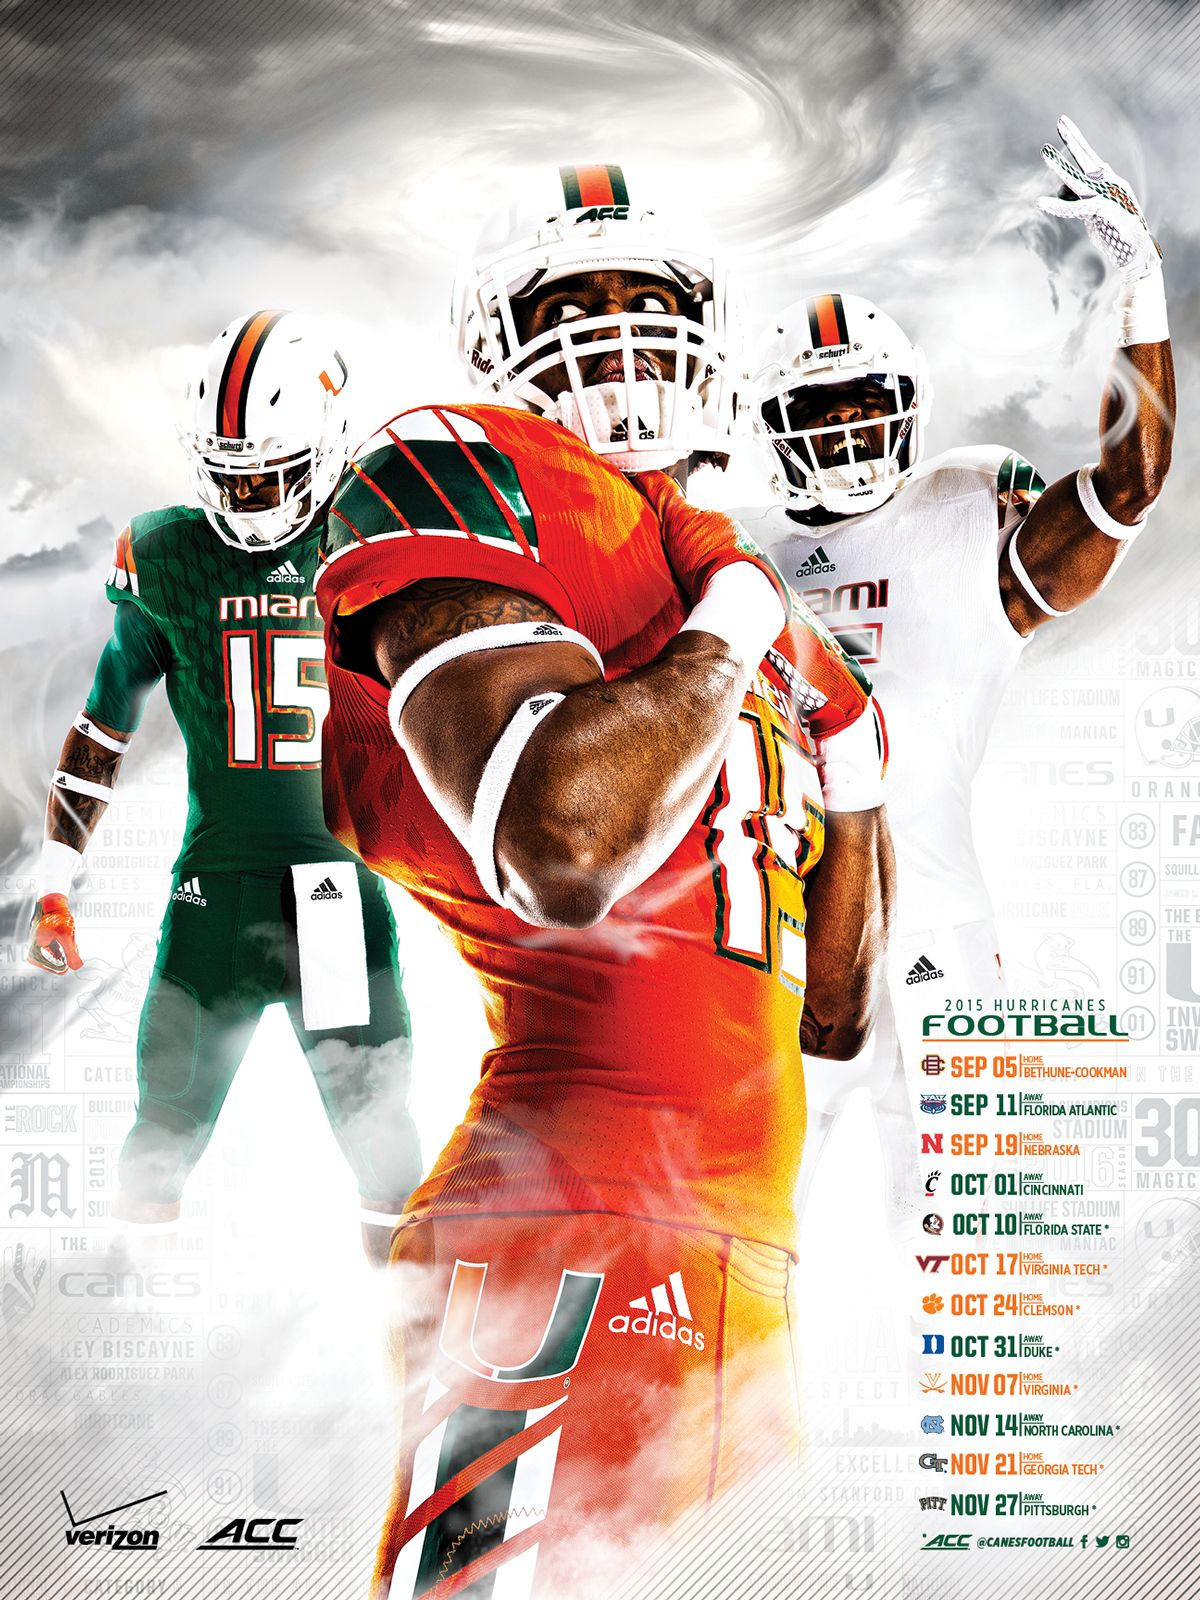 Miami Hurricanes Football Poster On Behance Miami Hurricanes Football Hurricanes Football Football Poster